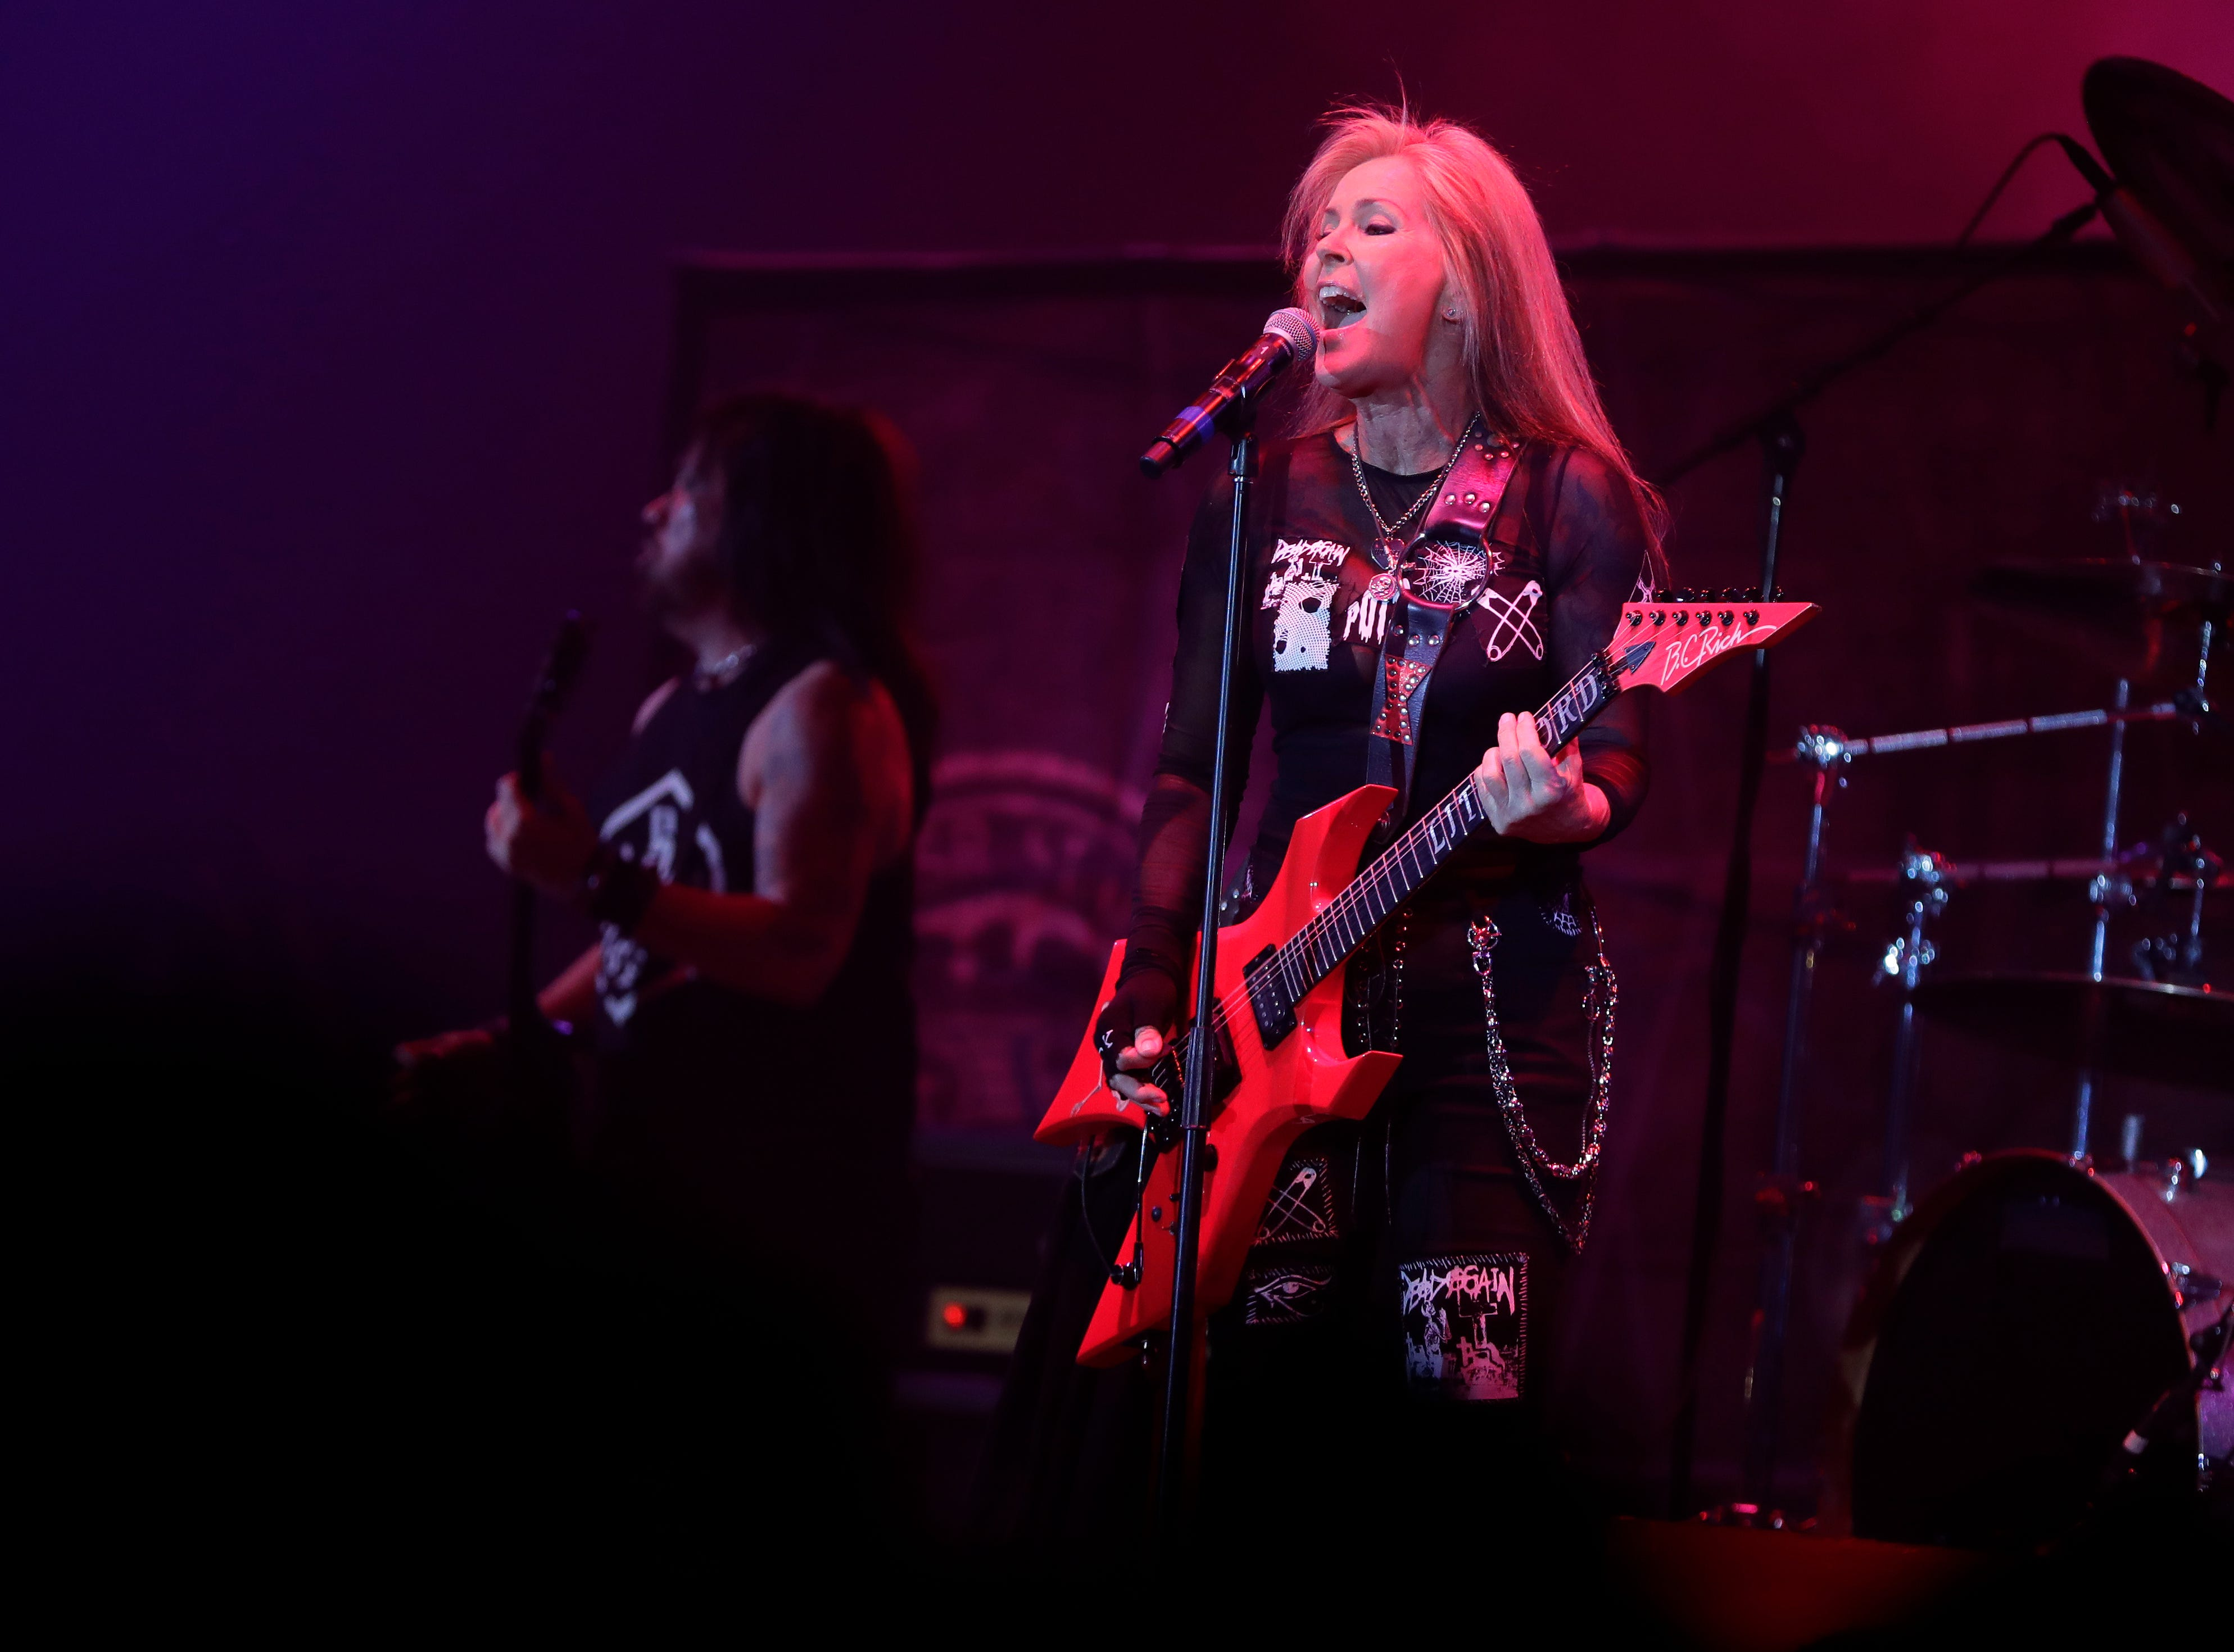 Lita Ford opens for Bret Michaels on April 6, 2019 during the last concert at Brown County Veterans Memorial Arena before the building is torn down.